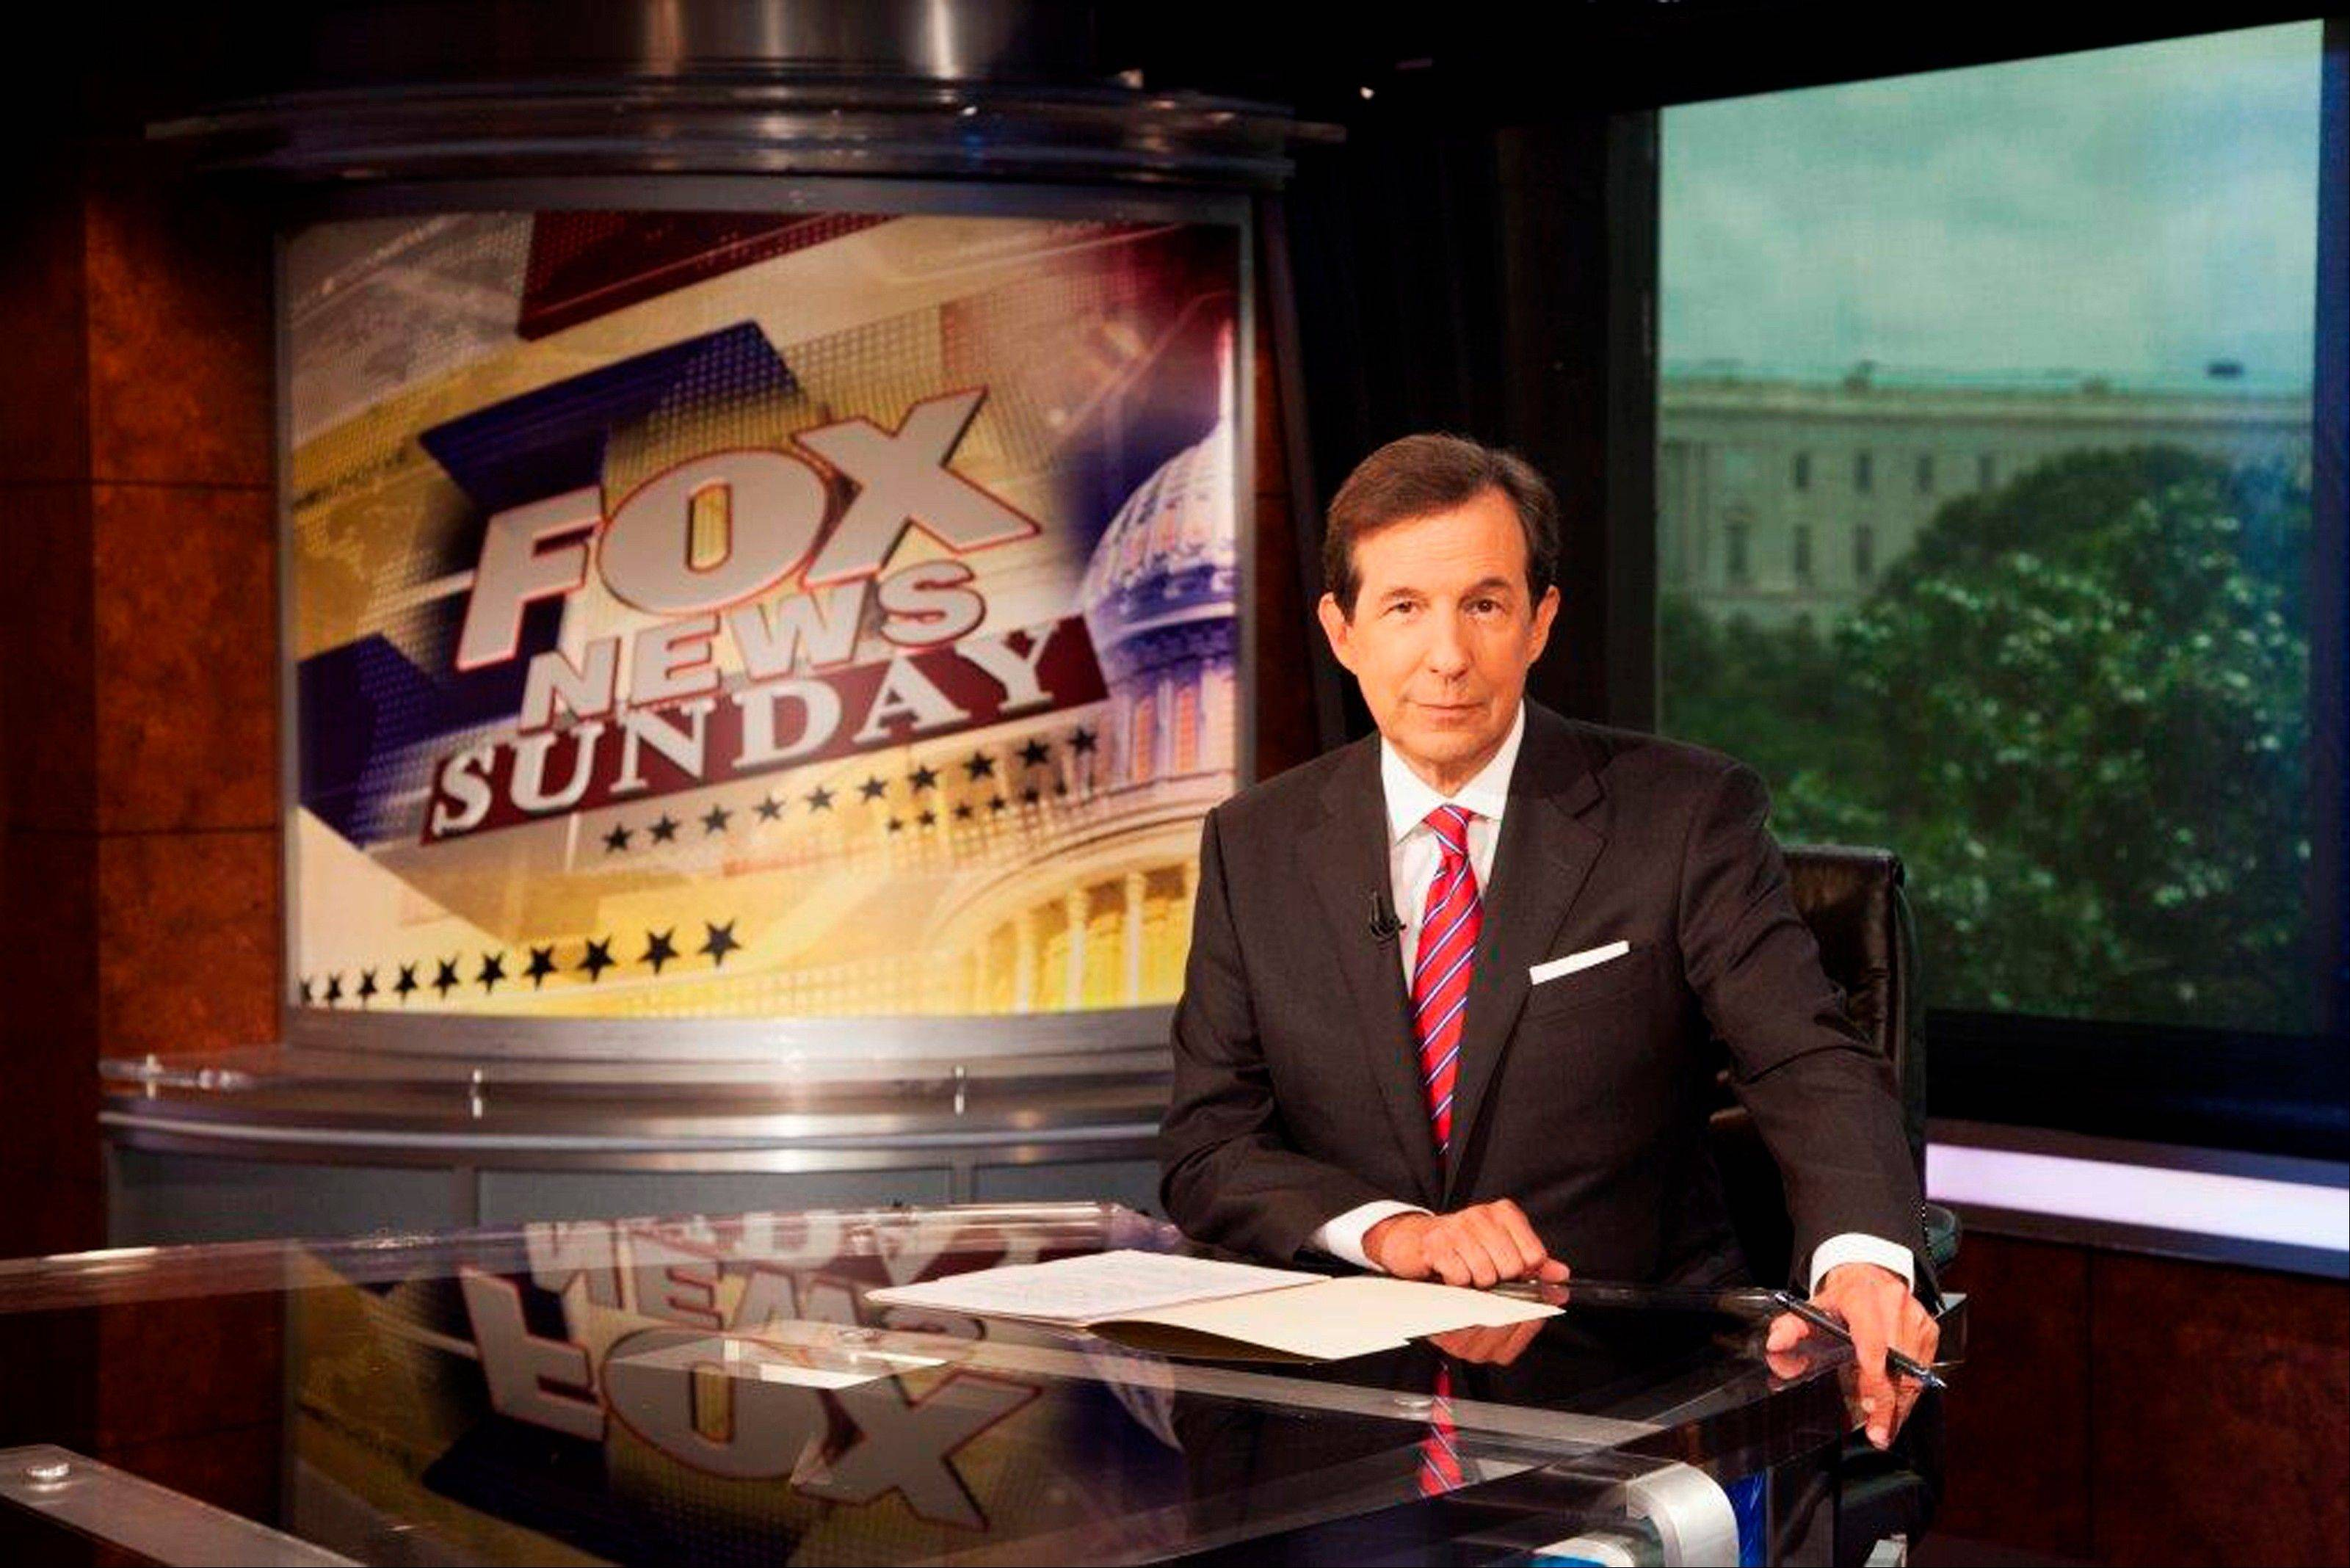 Chris Wallace marks his 10-year anniversary hosting �FOX News Sunday� this weekend.